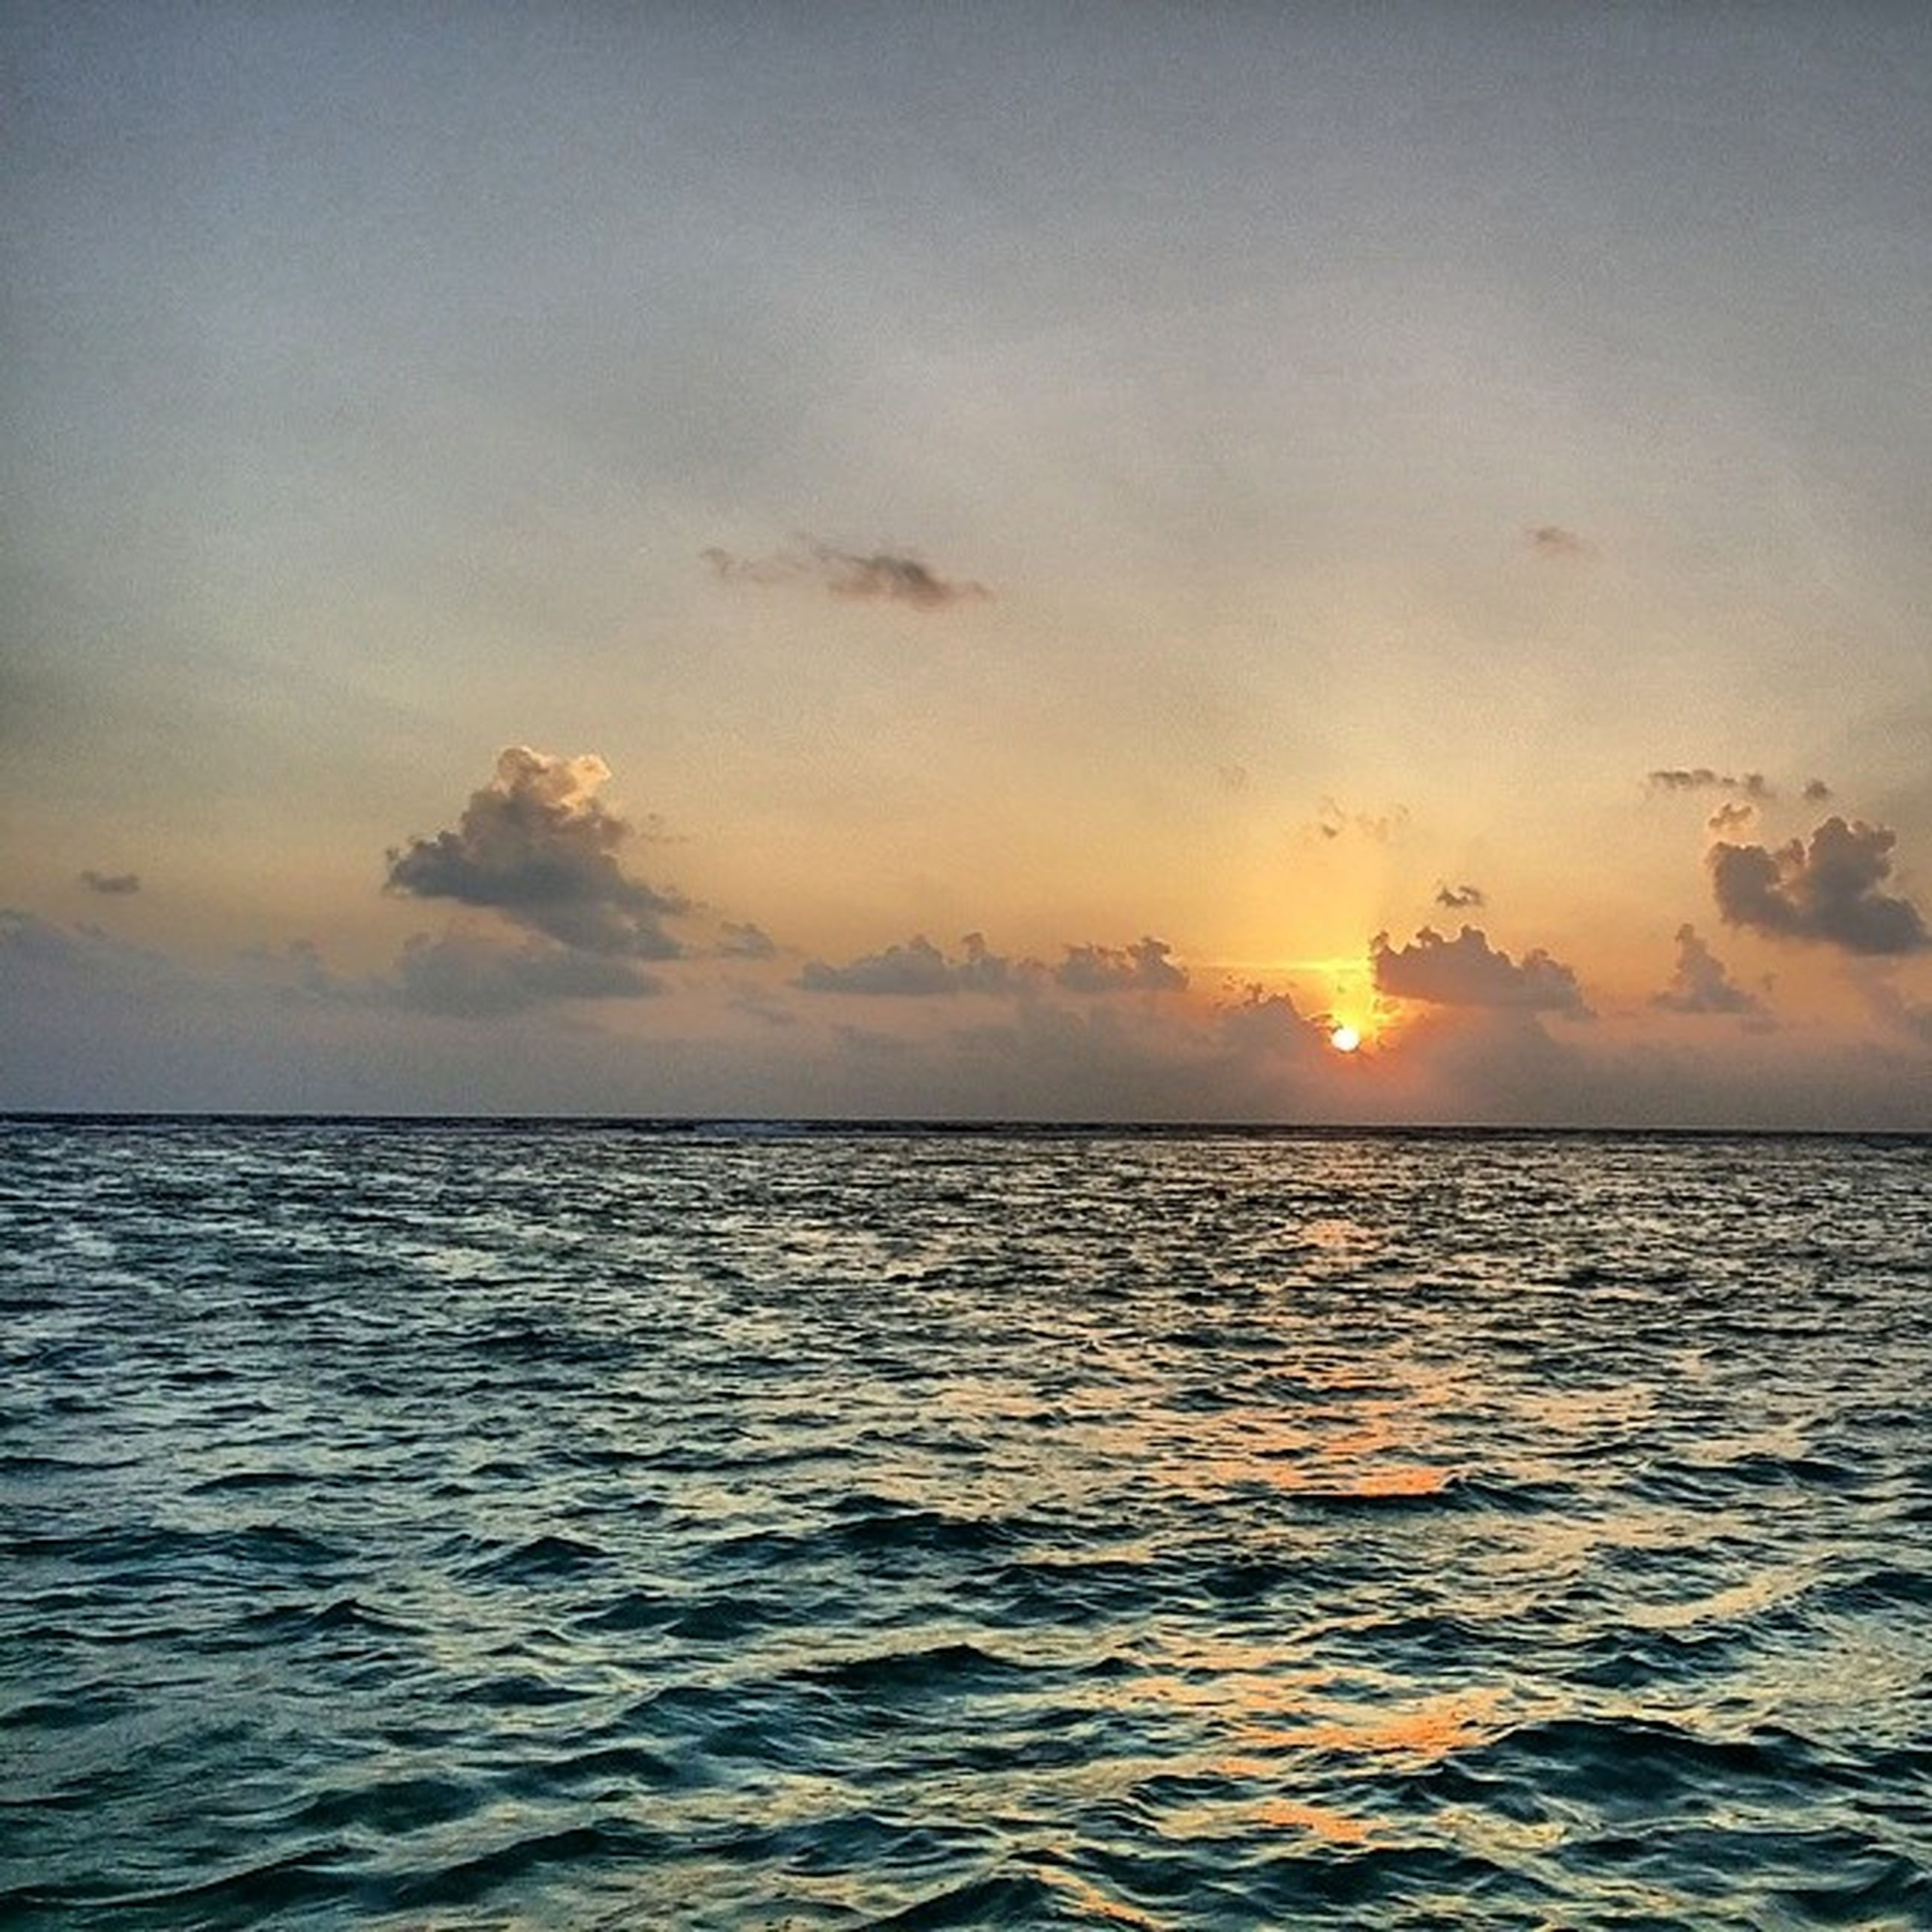 sea, water, sunset, horizon over water, scenics, tranquil scene, beauty in nature, tranquility, waterfront, sun, sky, rippled, nature, idyllic, orange color, sunlight, reflection, outdoors, seascape, cloud - sky